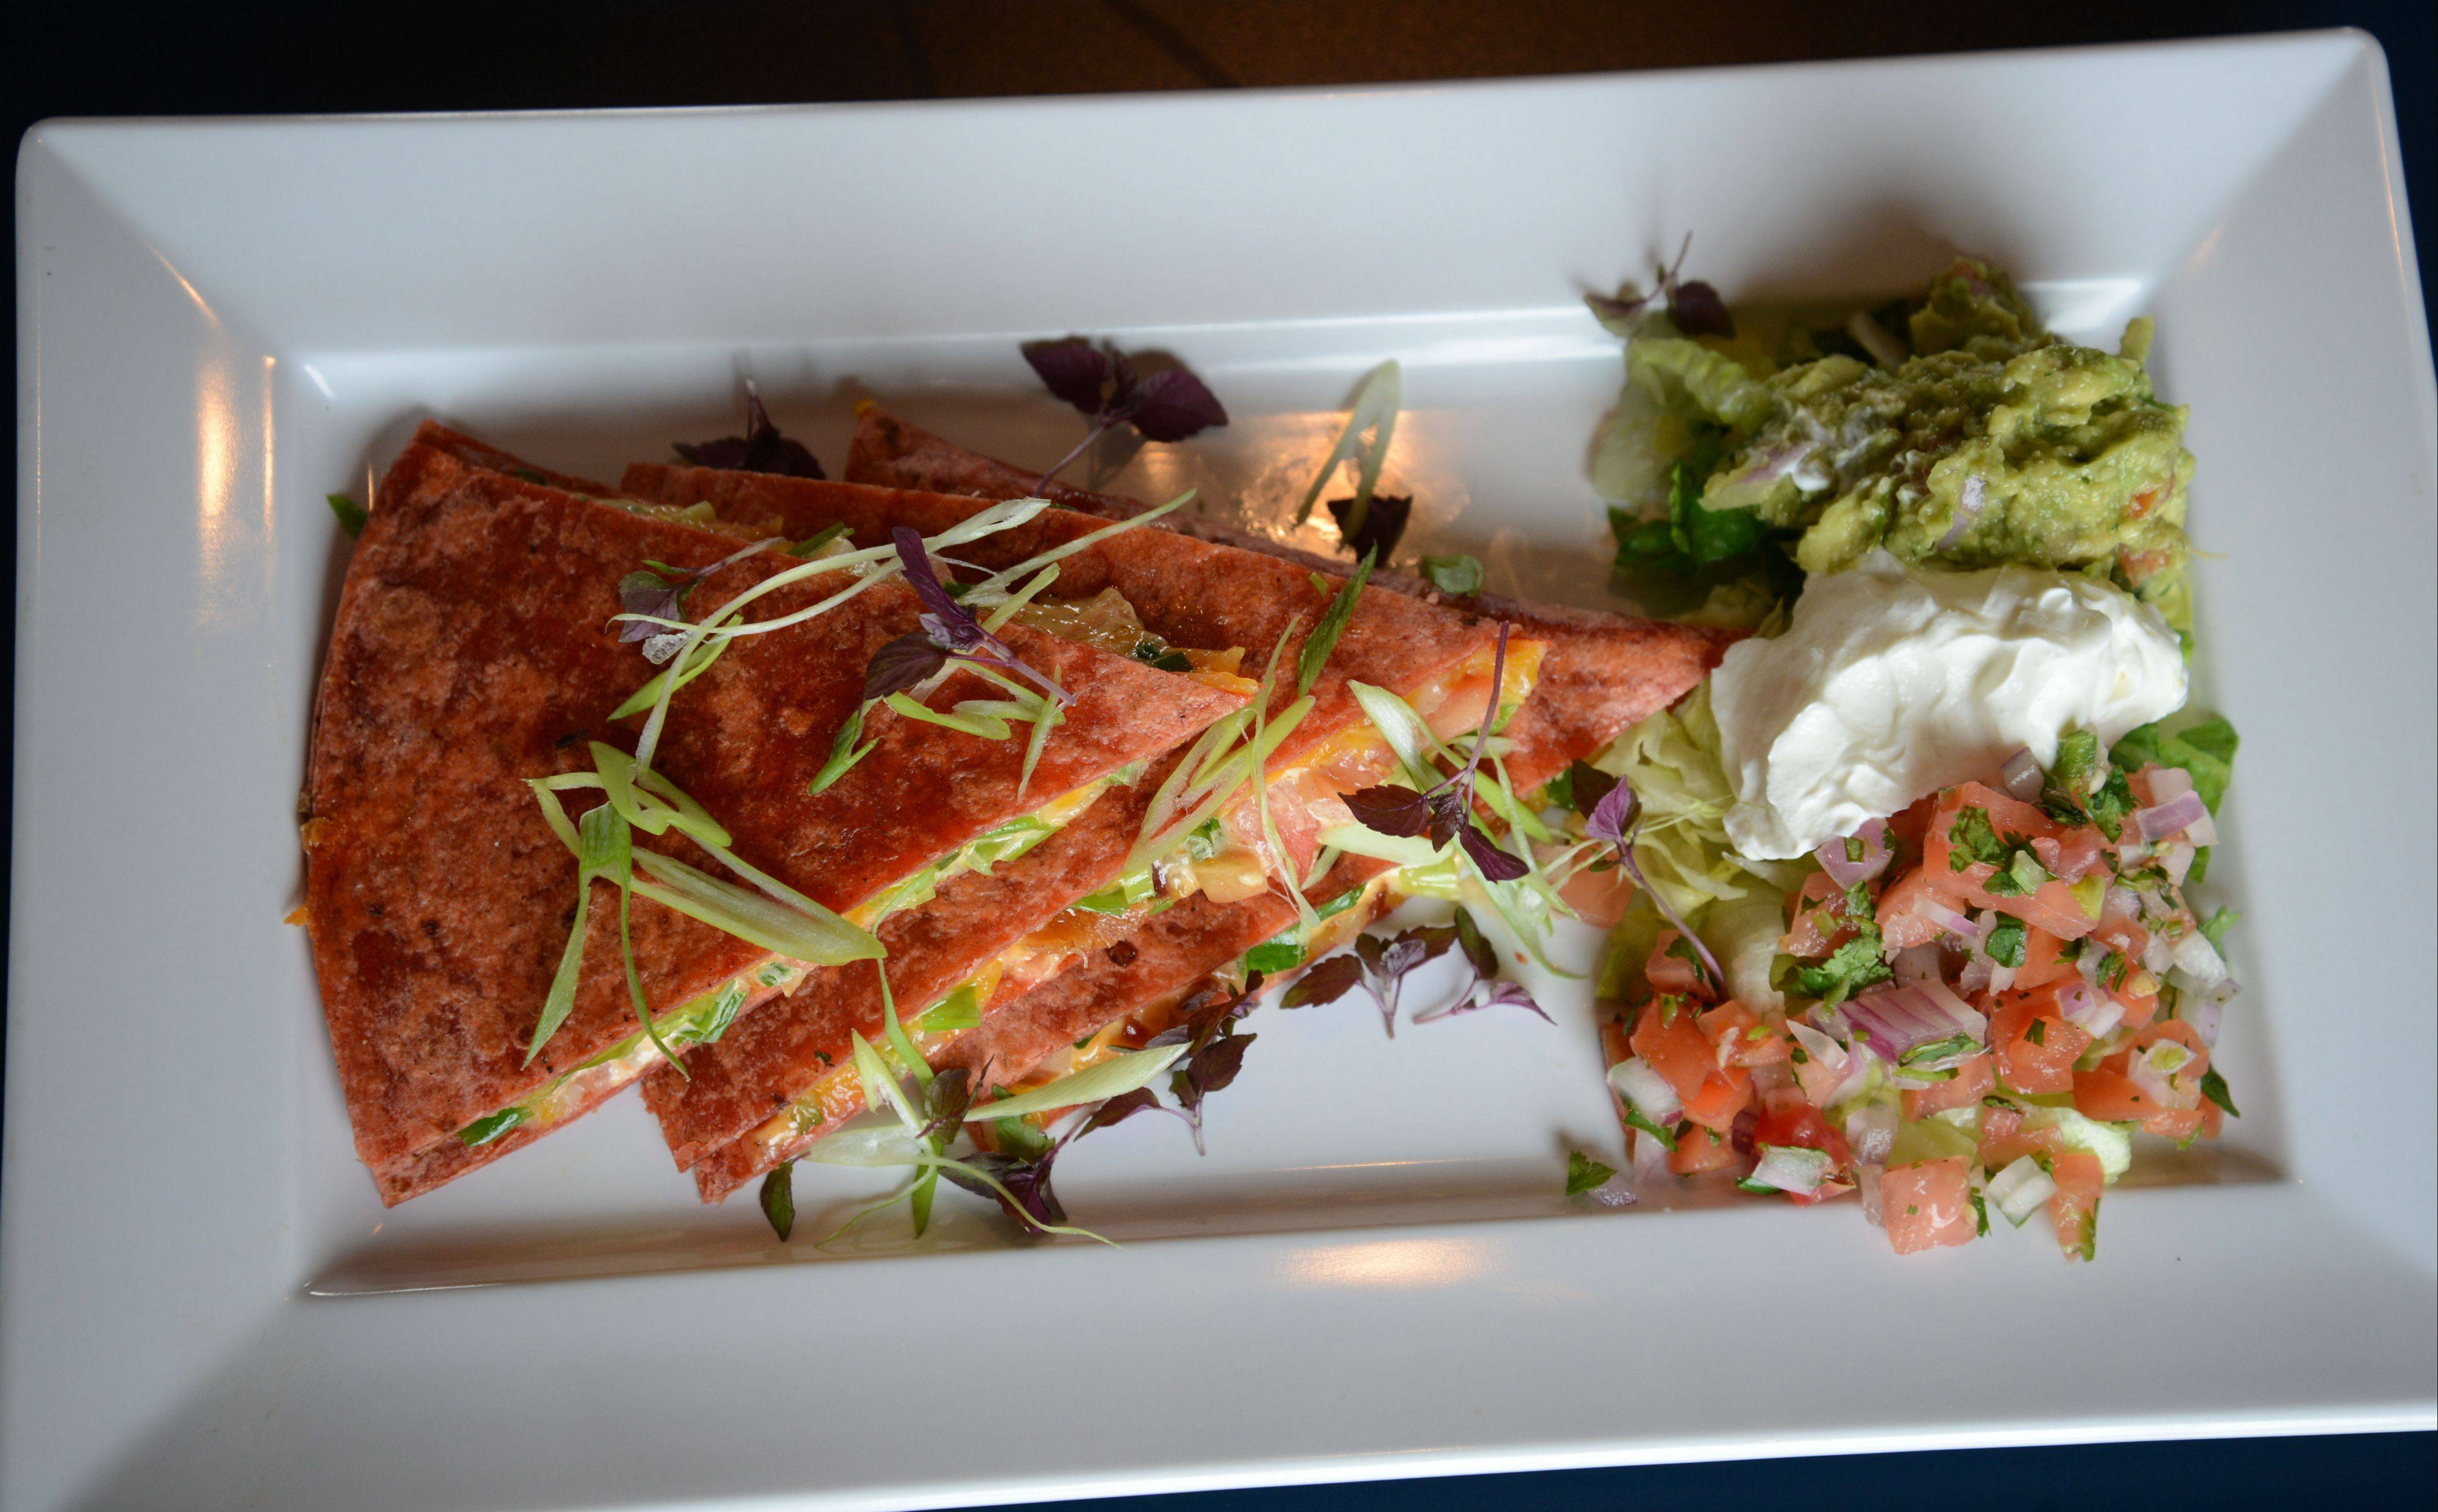 The quesadilla appetizer at McChesney's Pub & Grill could almost be a meal.